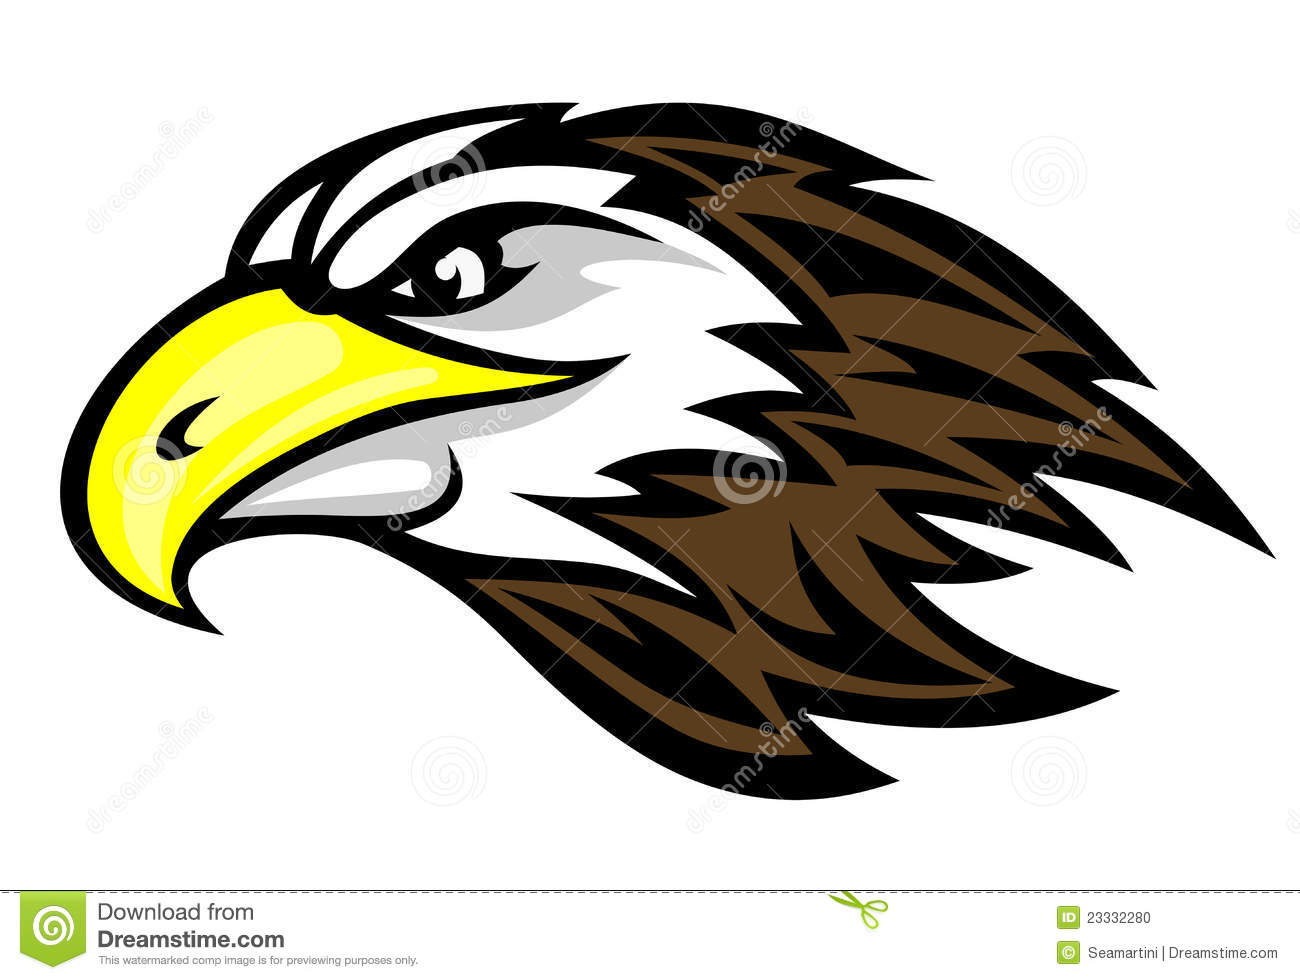 Cartoon falcon head for mascot or tattoo design.